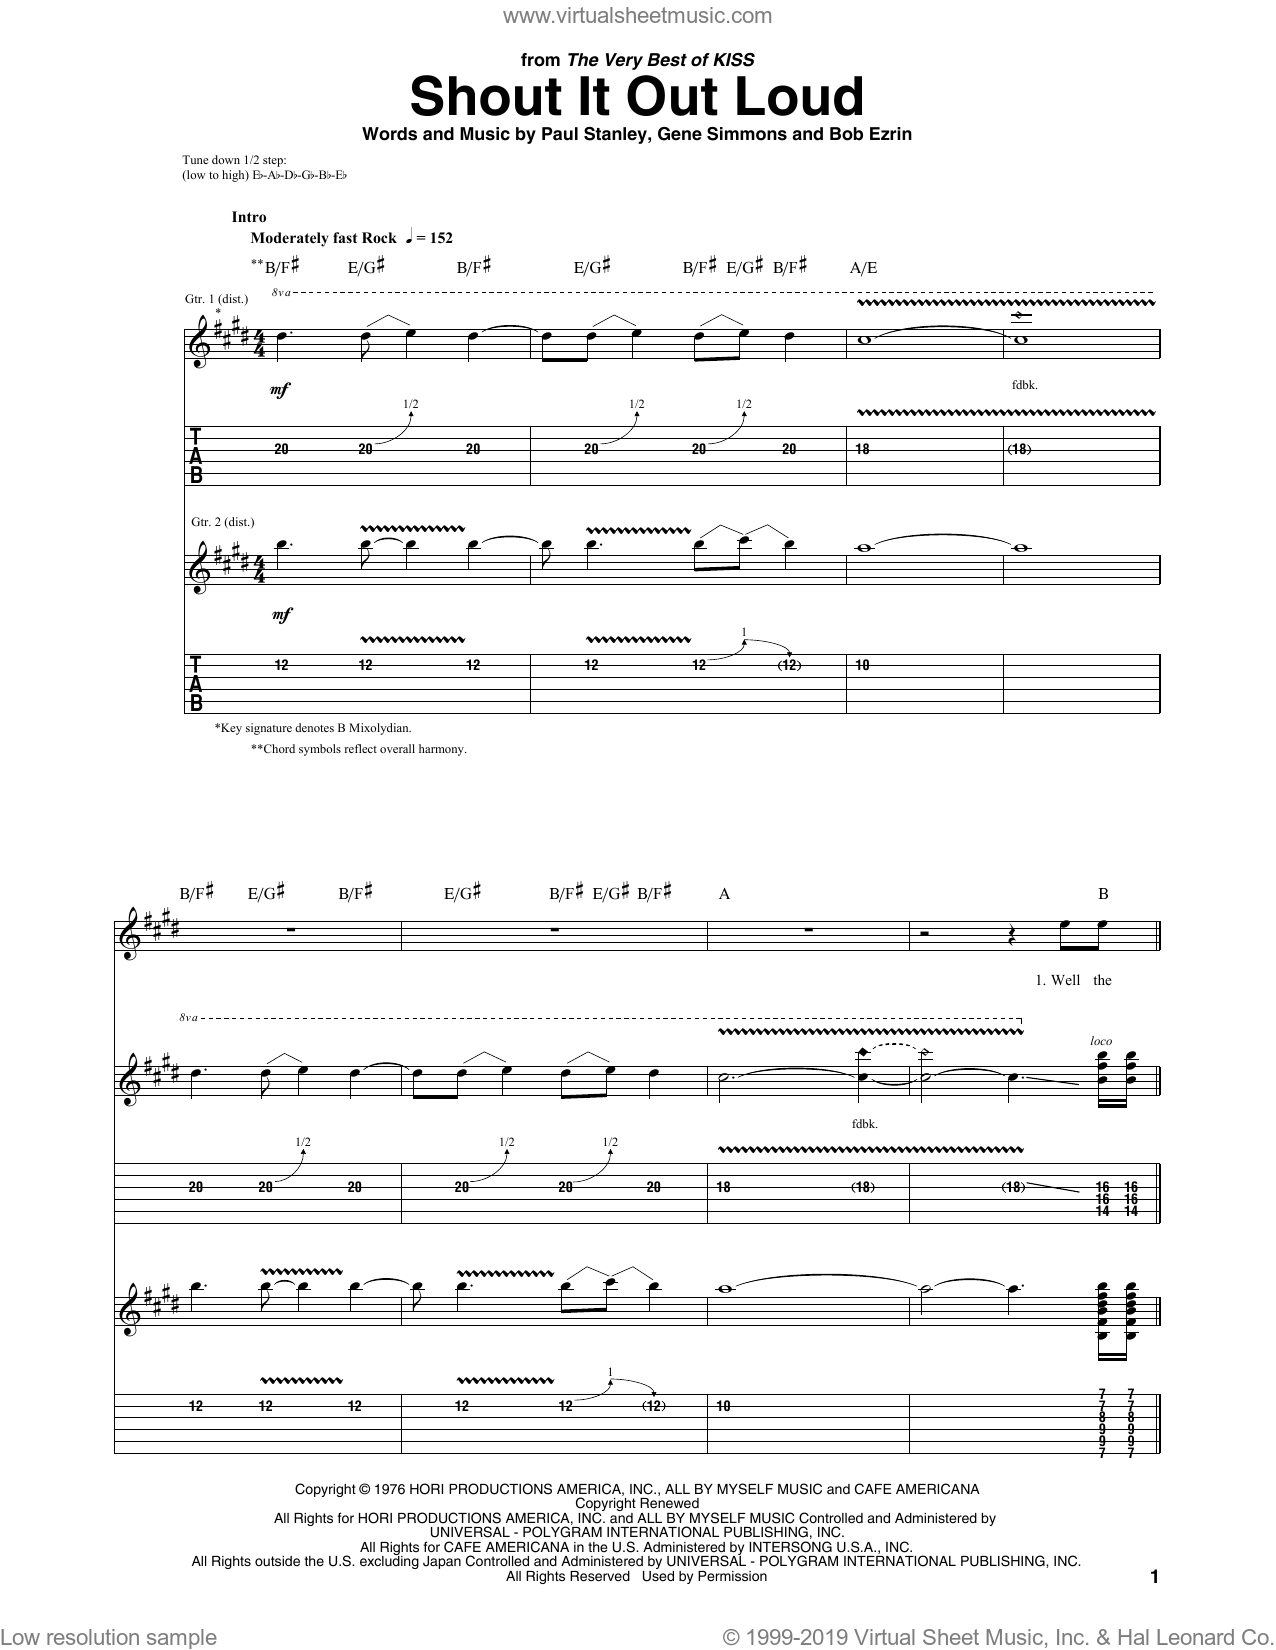 Shout It Out Loud sheet music for guitar (tablature) by Paul Stanley